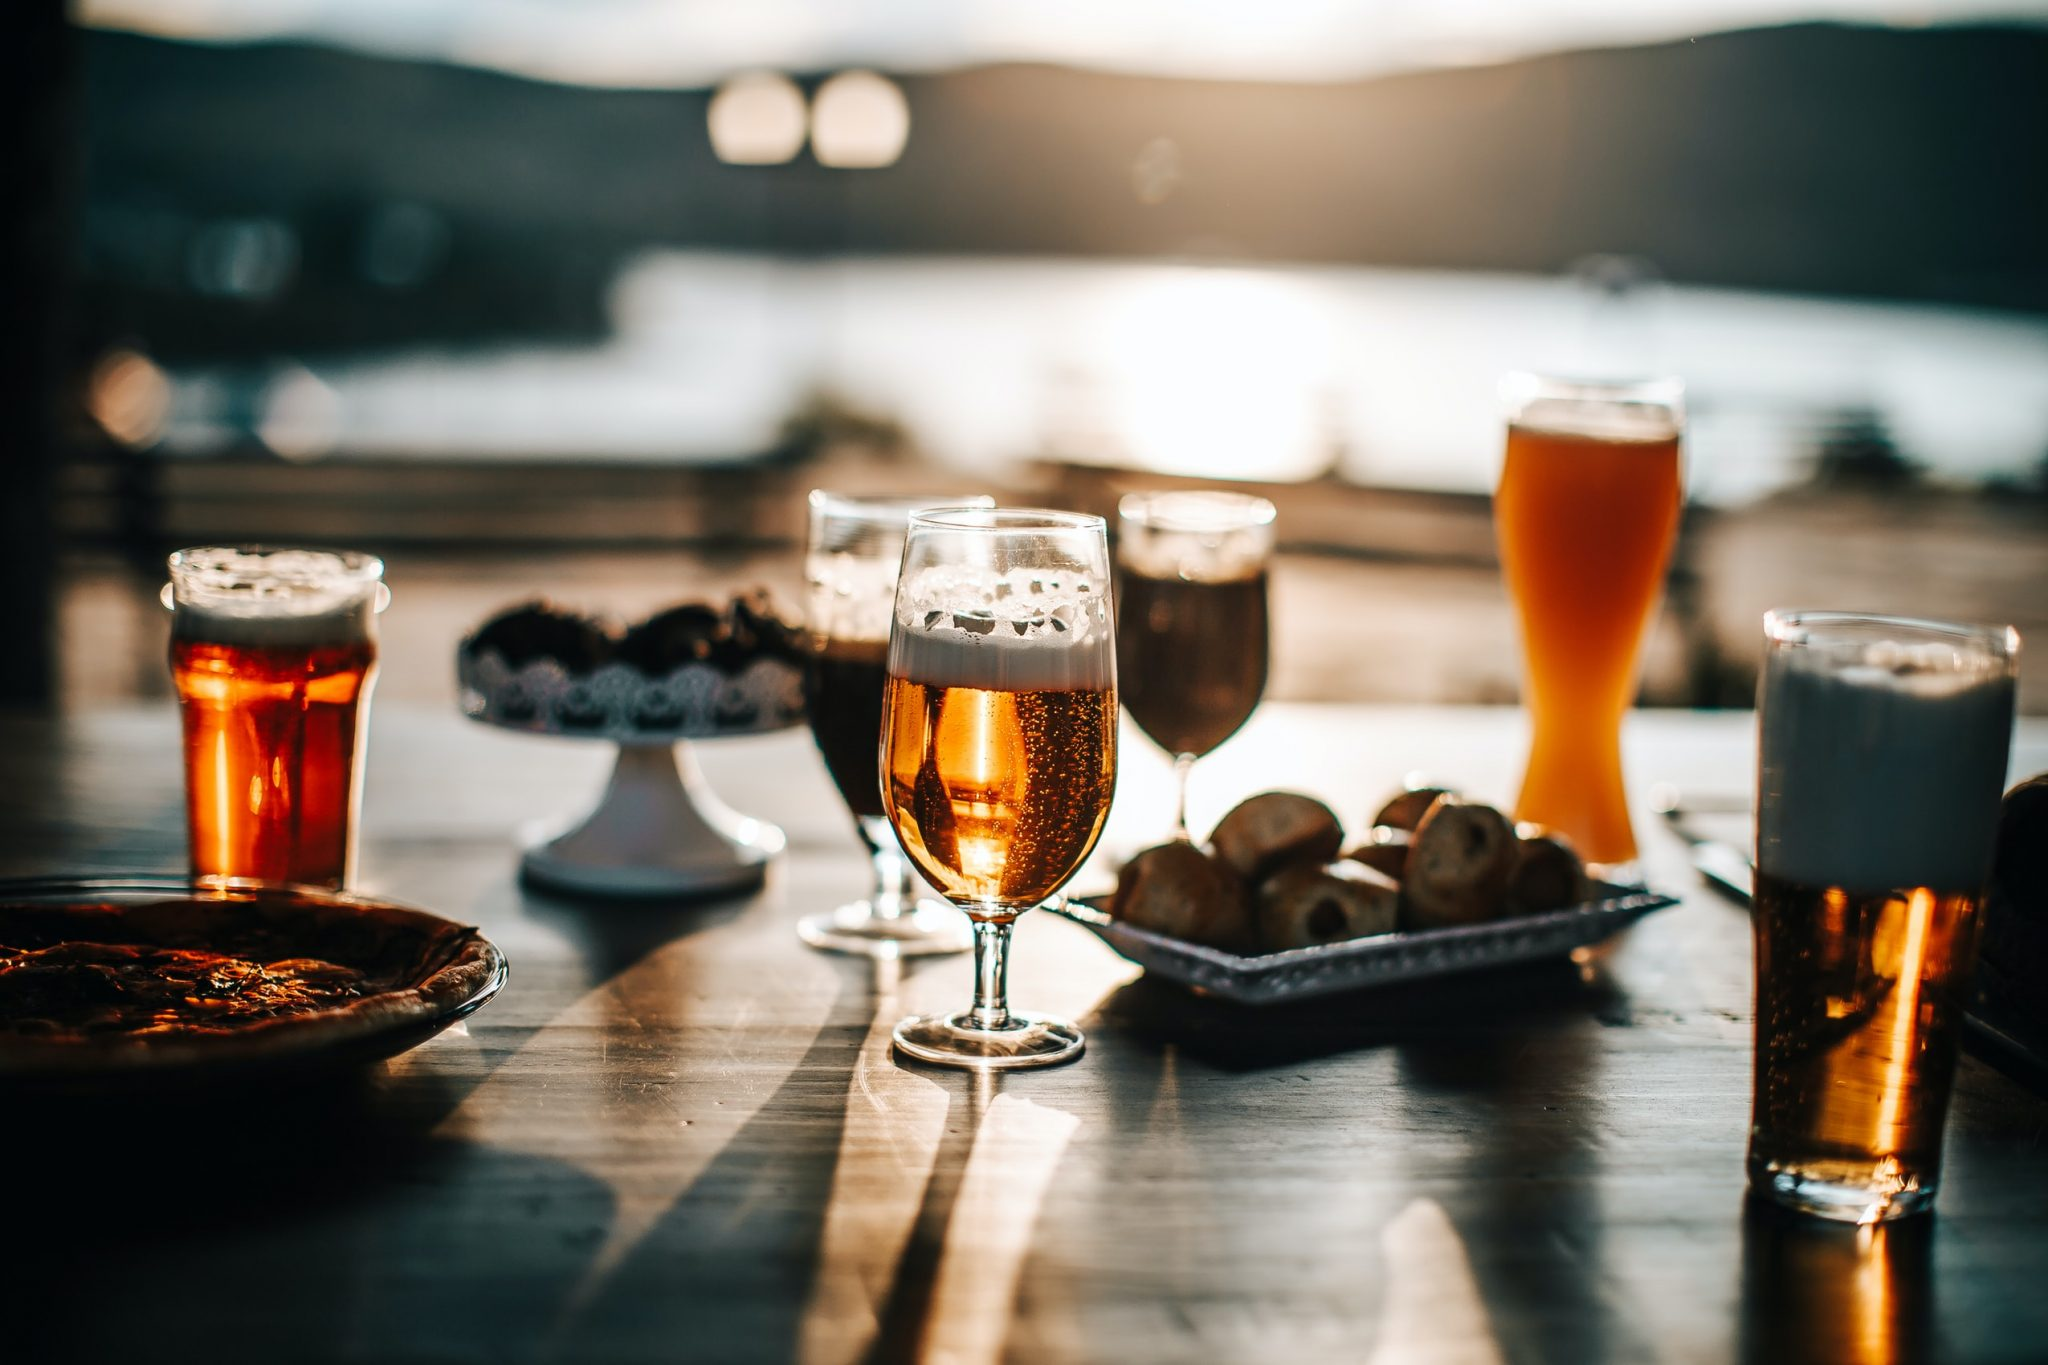 YesMore Bar Marketing Agency's hospitality industry guide to re-opening pubs bars and restaurants after COVID-19